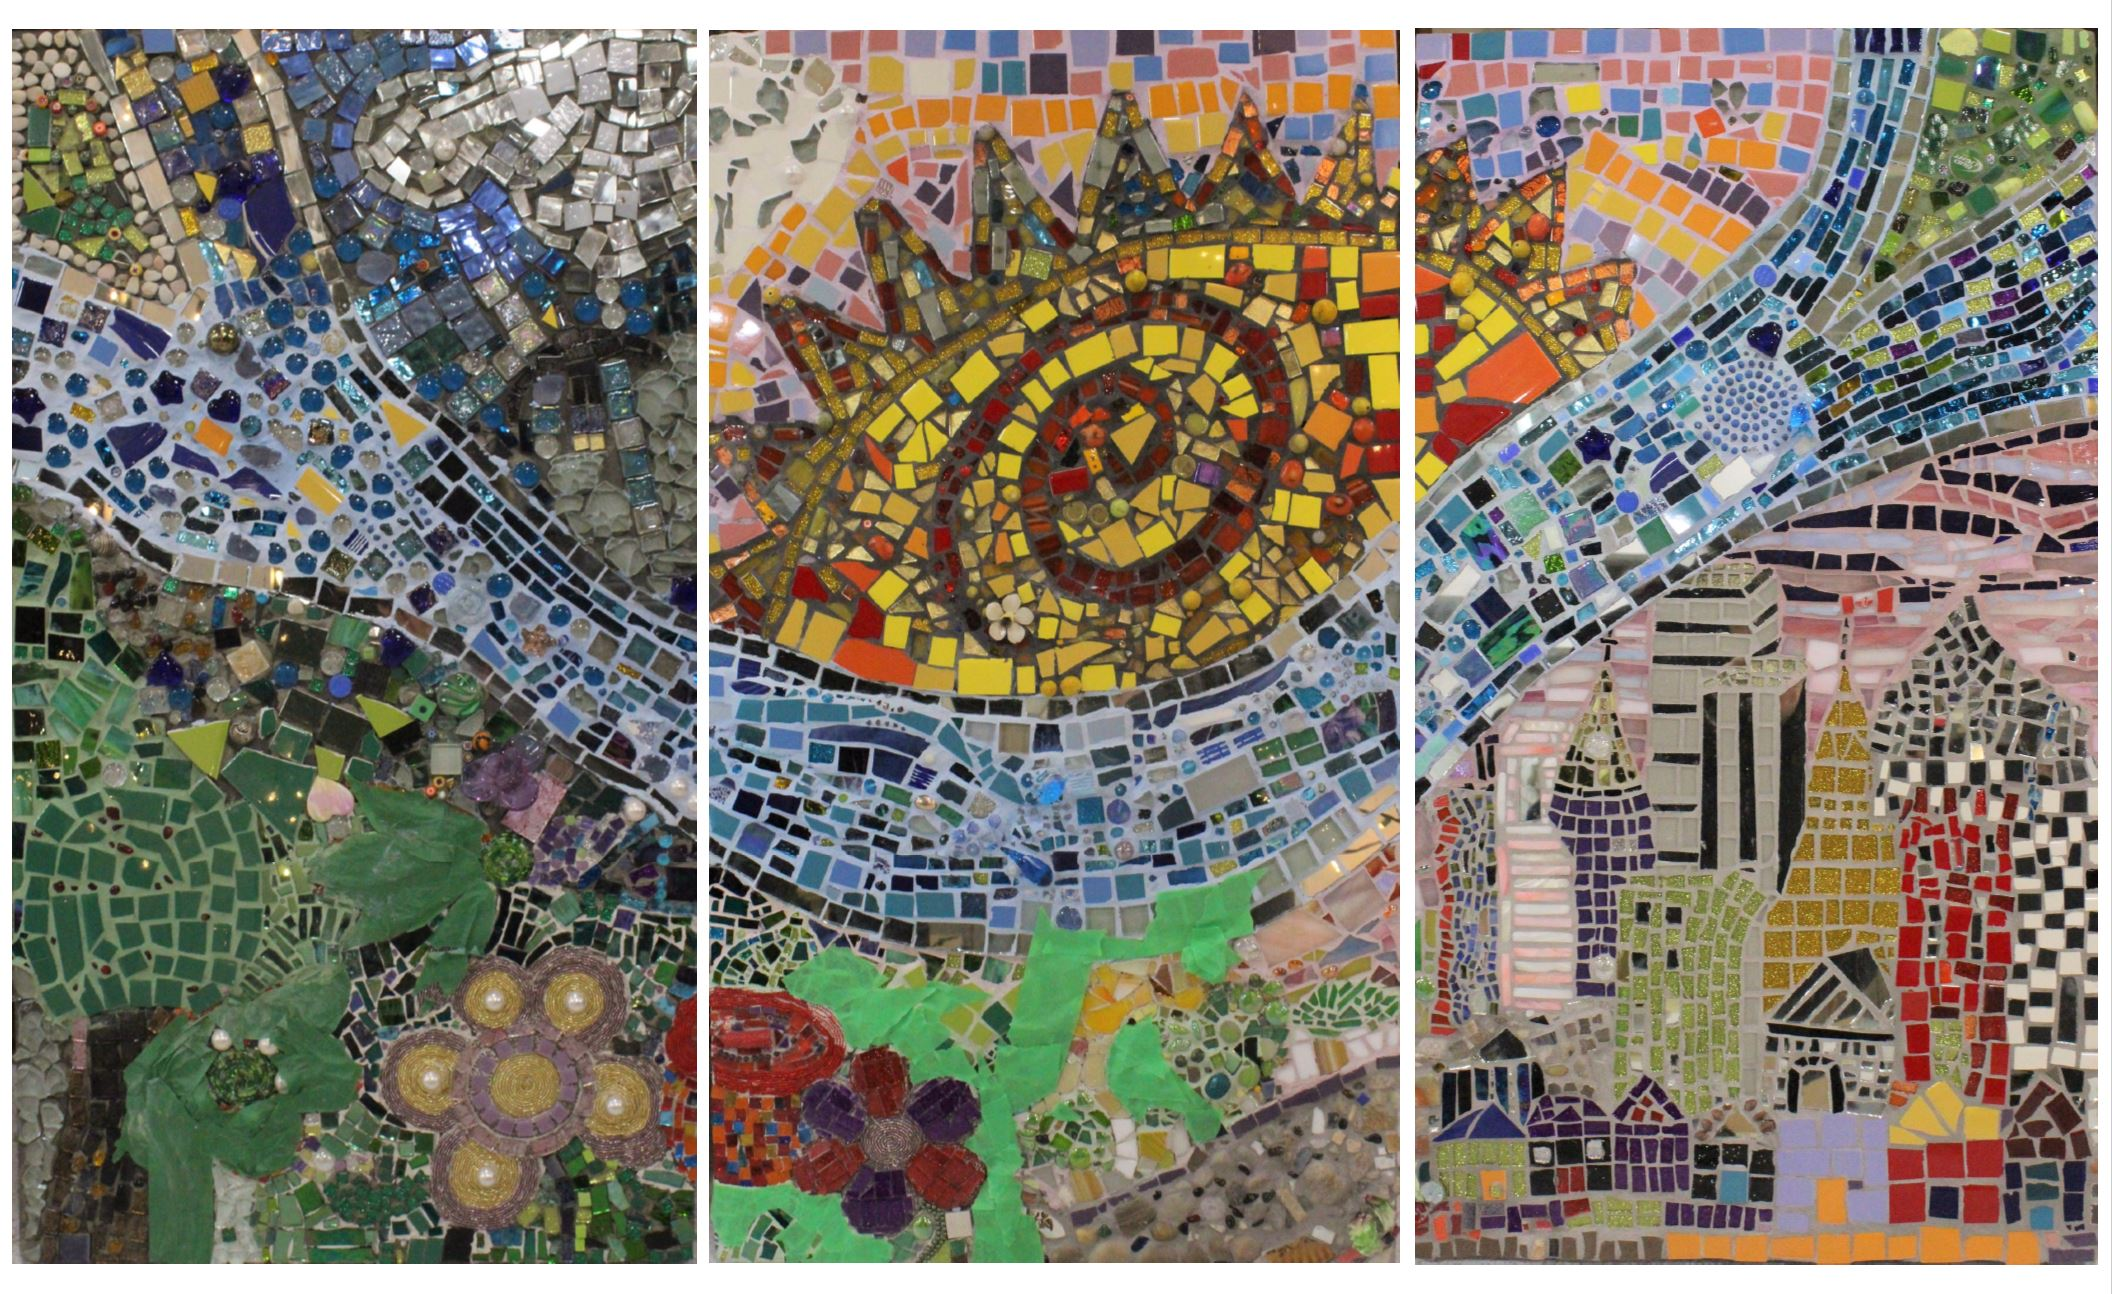 "IMAGE ABOVE:   ""London's Sunny Days"",  Mosaic (Materials: Glass, Mirror, Tiles, Glass Beads, Semi-Precious Stones, Rock, Marble and found objects such as Marbles, Costume Jewelry, and Bottle Caps, mounted on Plywood and WEDI Board), 3 panels measuring 3' x 5"", London, ON, Canada – WORK IN PROGRESS, to be finished in 2019"